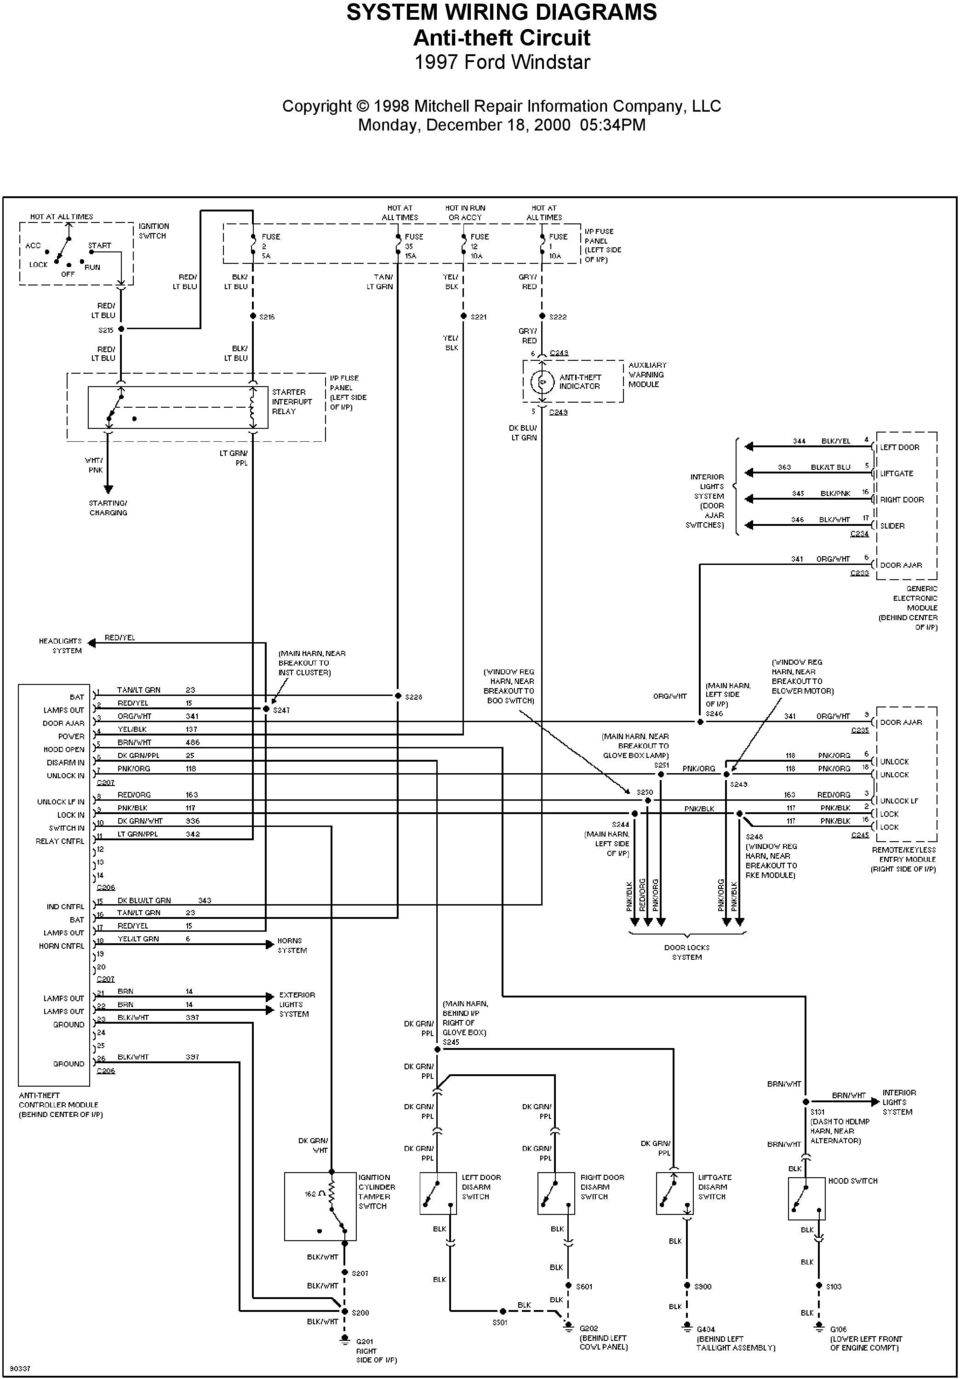 System Wiring Diagrams Air Conditioning Circuits 1997 Ford Windstar 2000 Alternator Diagram Monday